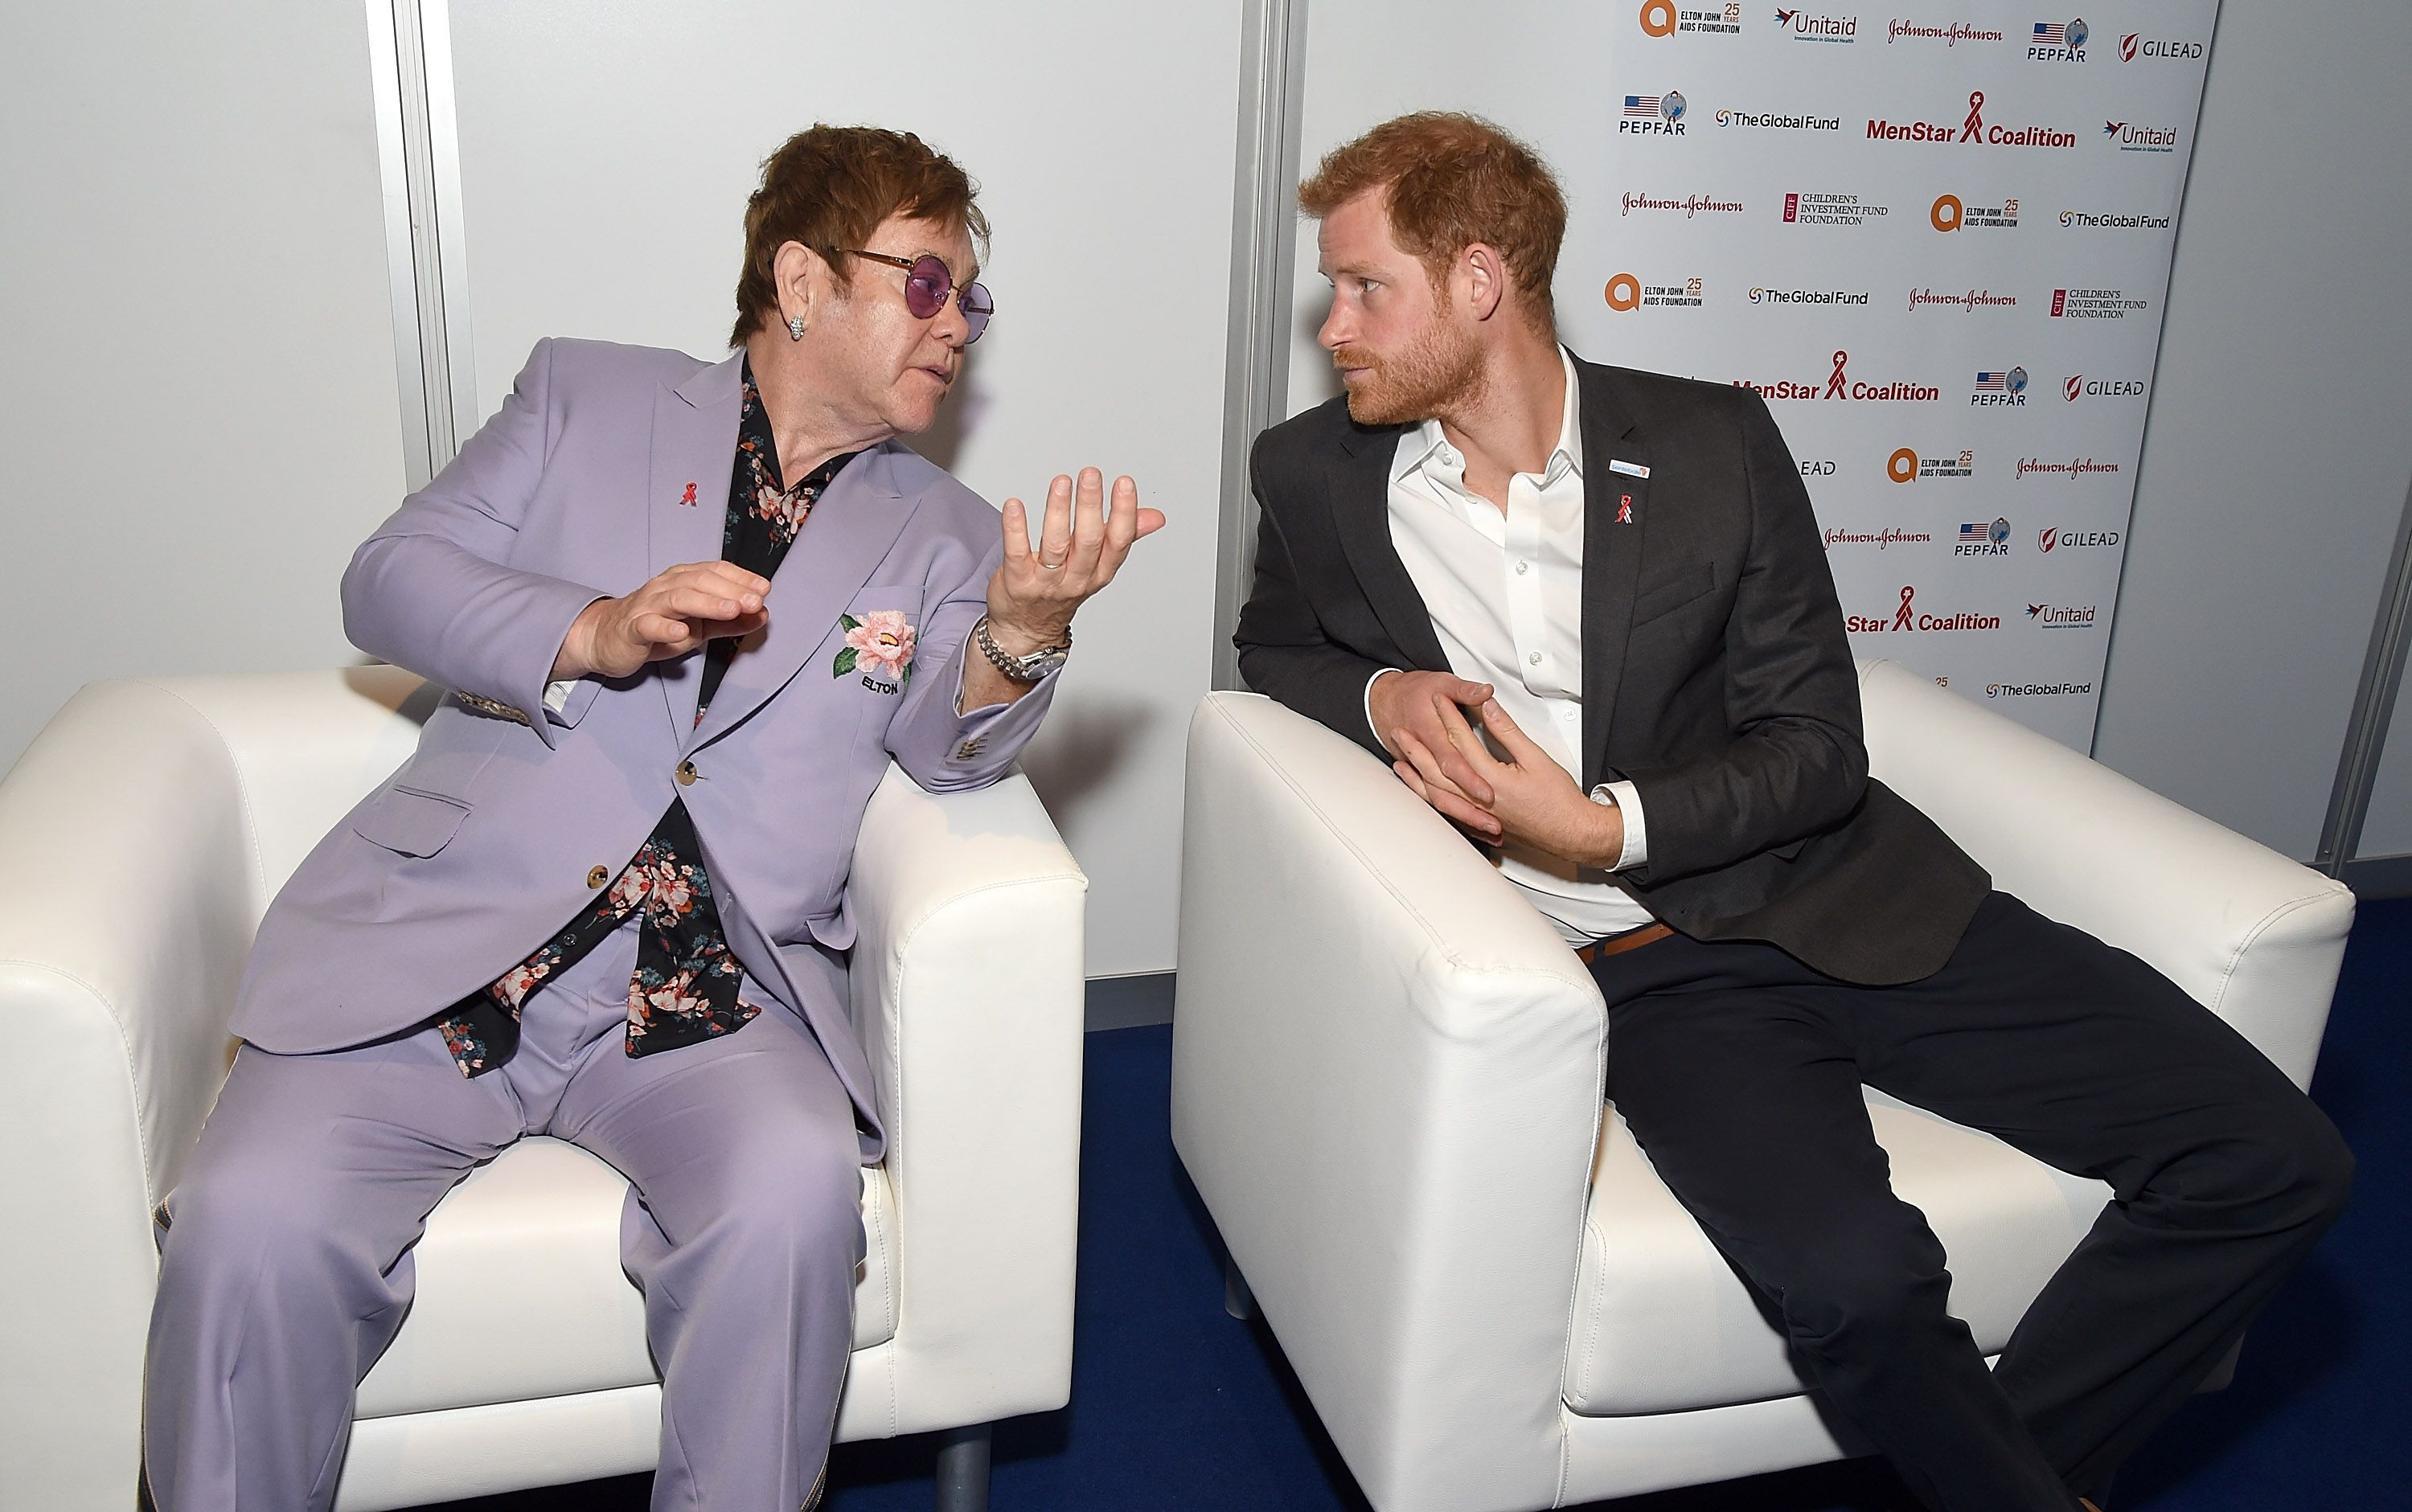 Sir Elton John Passionately Defends Meghan Markle And Prince Harry Over Private Jet Row